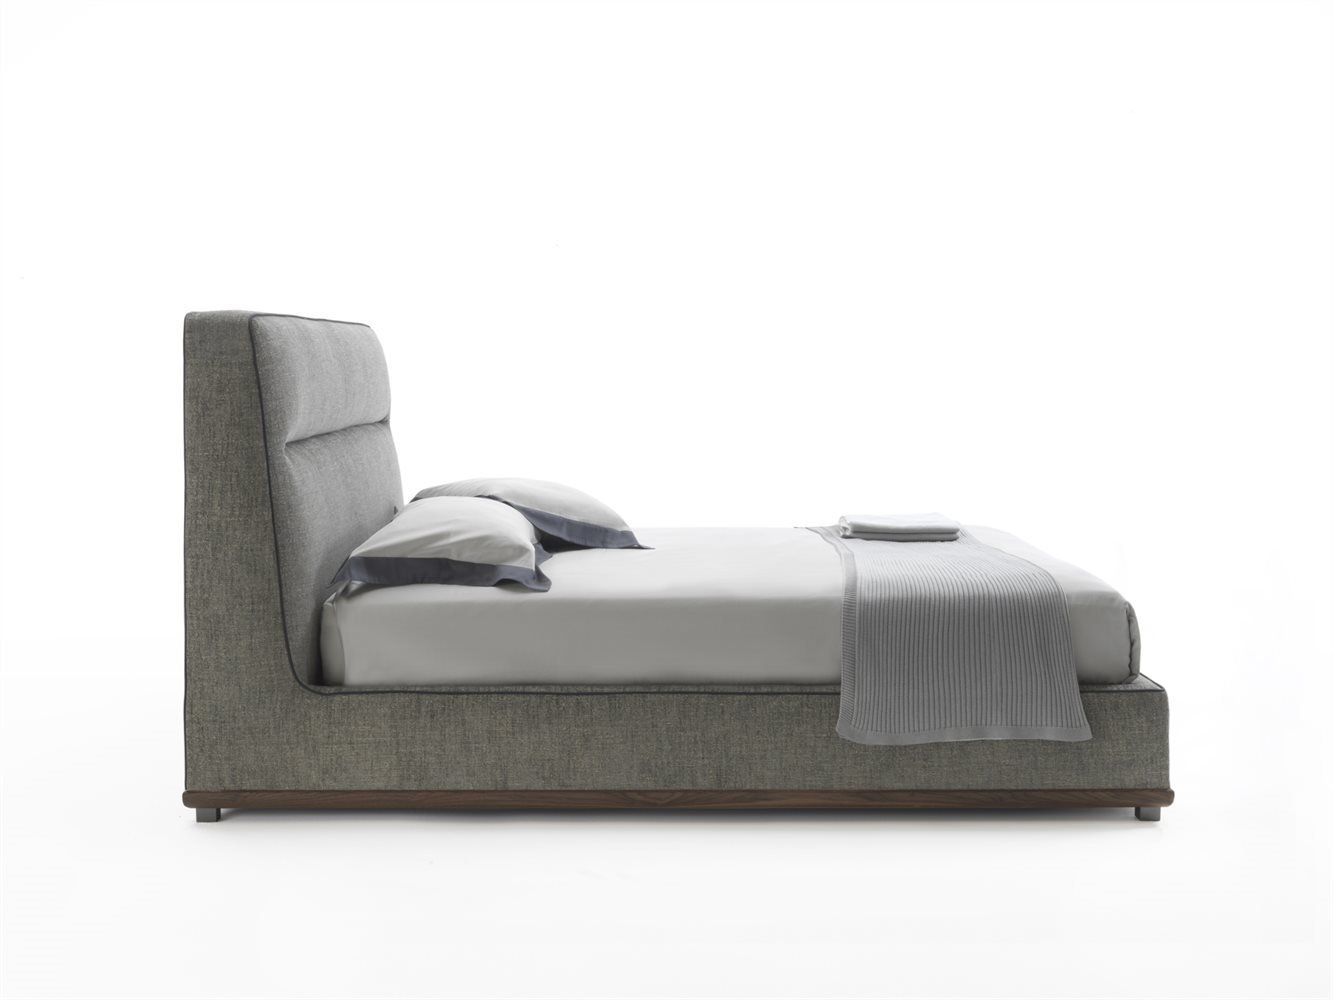 Kirk bed from Porada, designed by C. Ballabio